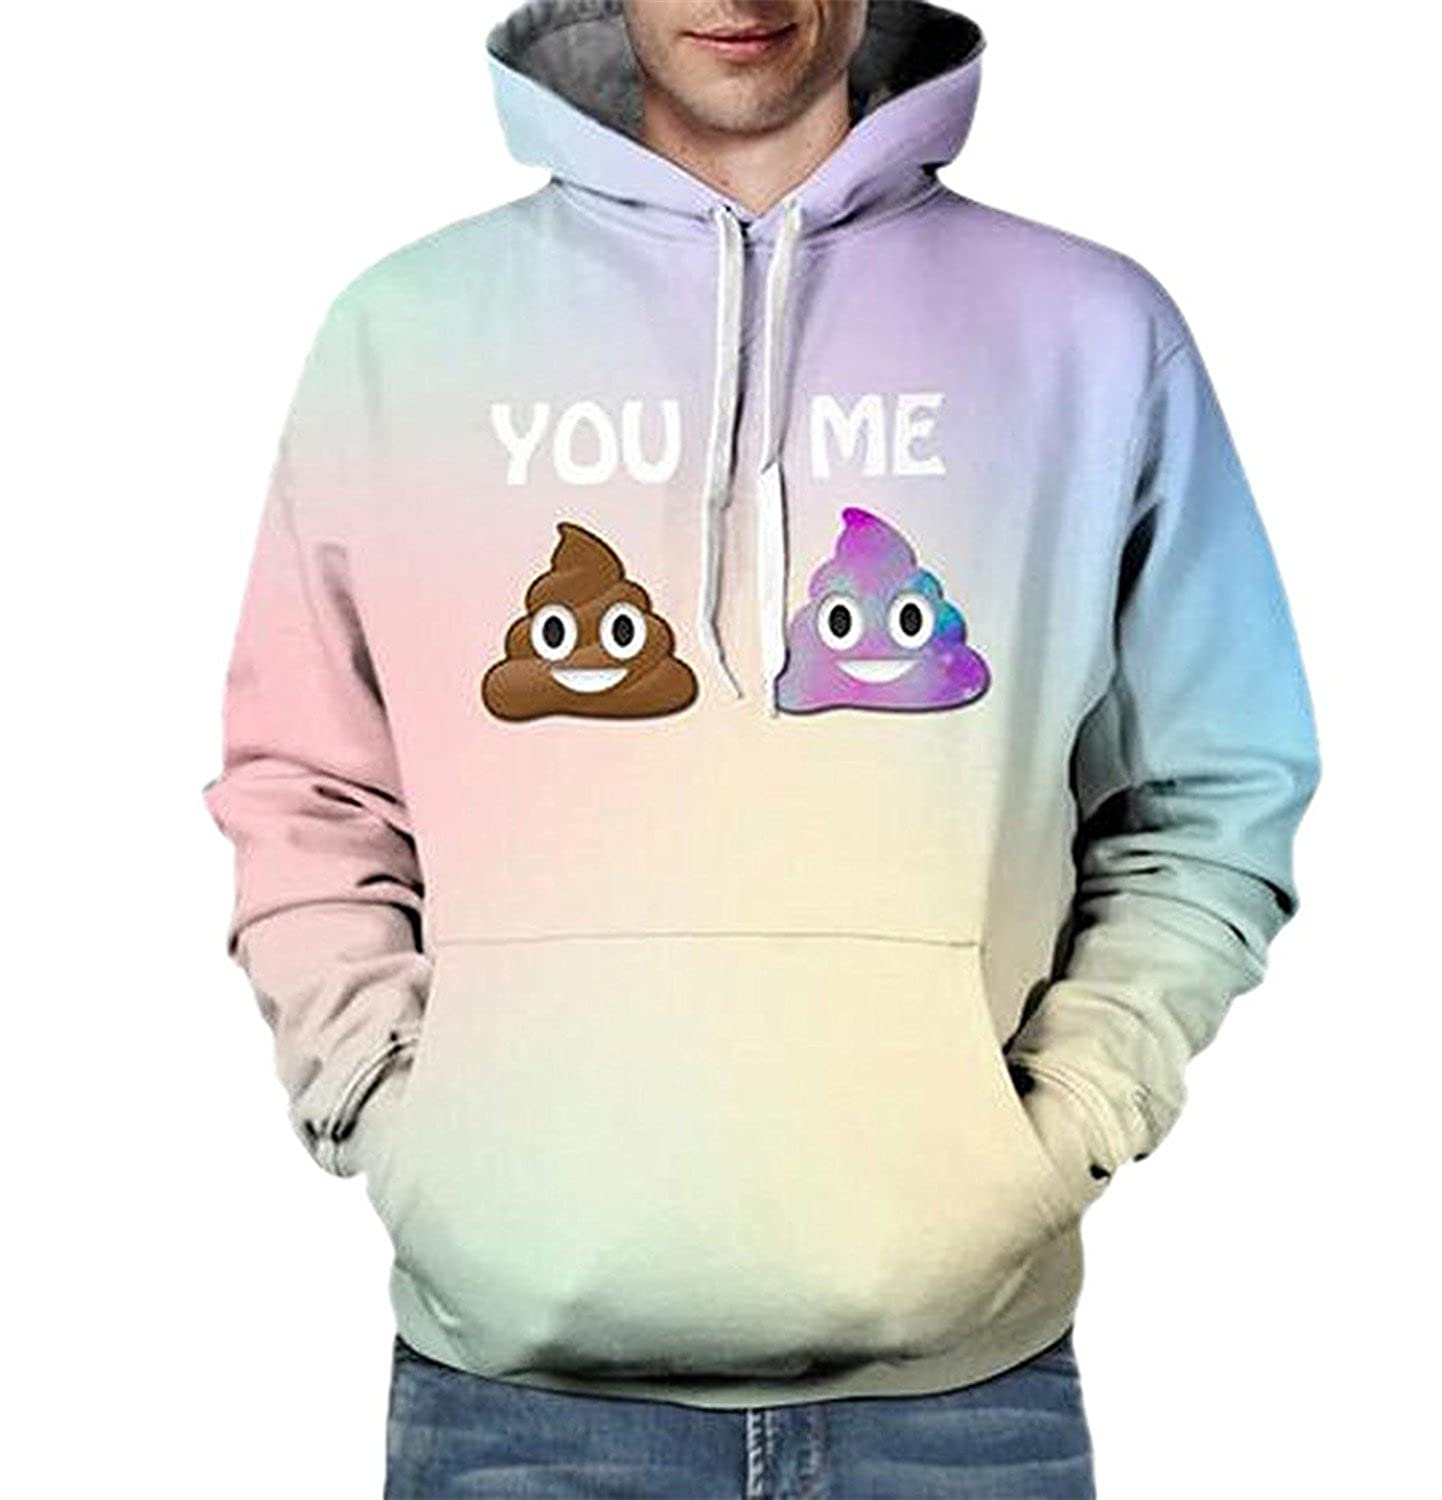 KDHJJOLY New Mens Drawstring Hip Hop Funny Shit Printed Sweatshirts With Hood